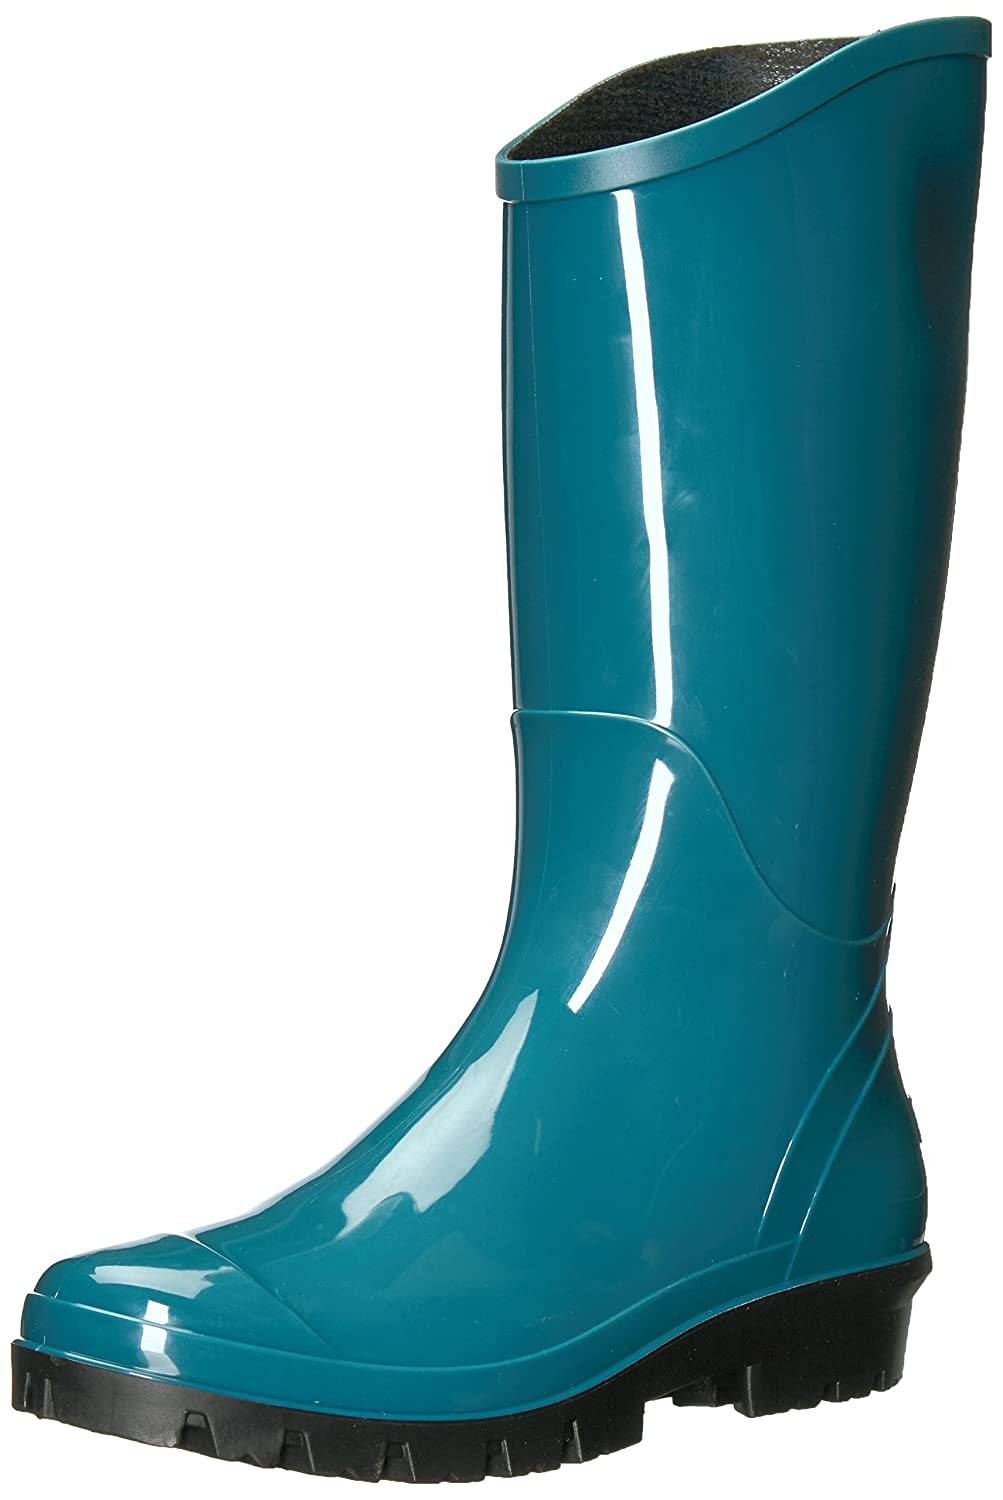 Columbia Women's Rainey Tall Rain Boot B01N4FV2UR 5 B(M) US|Cloudburst, Ginkgo